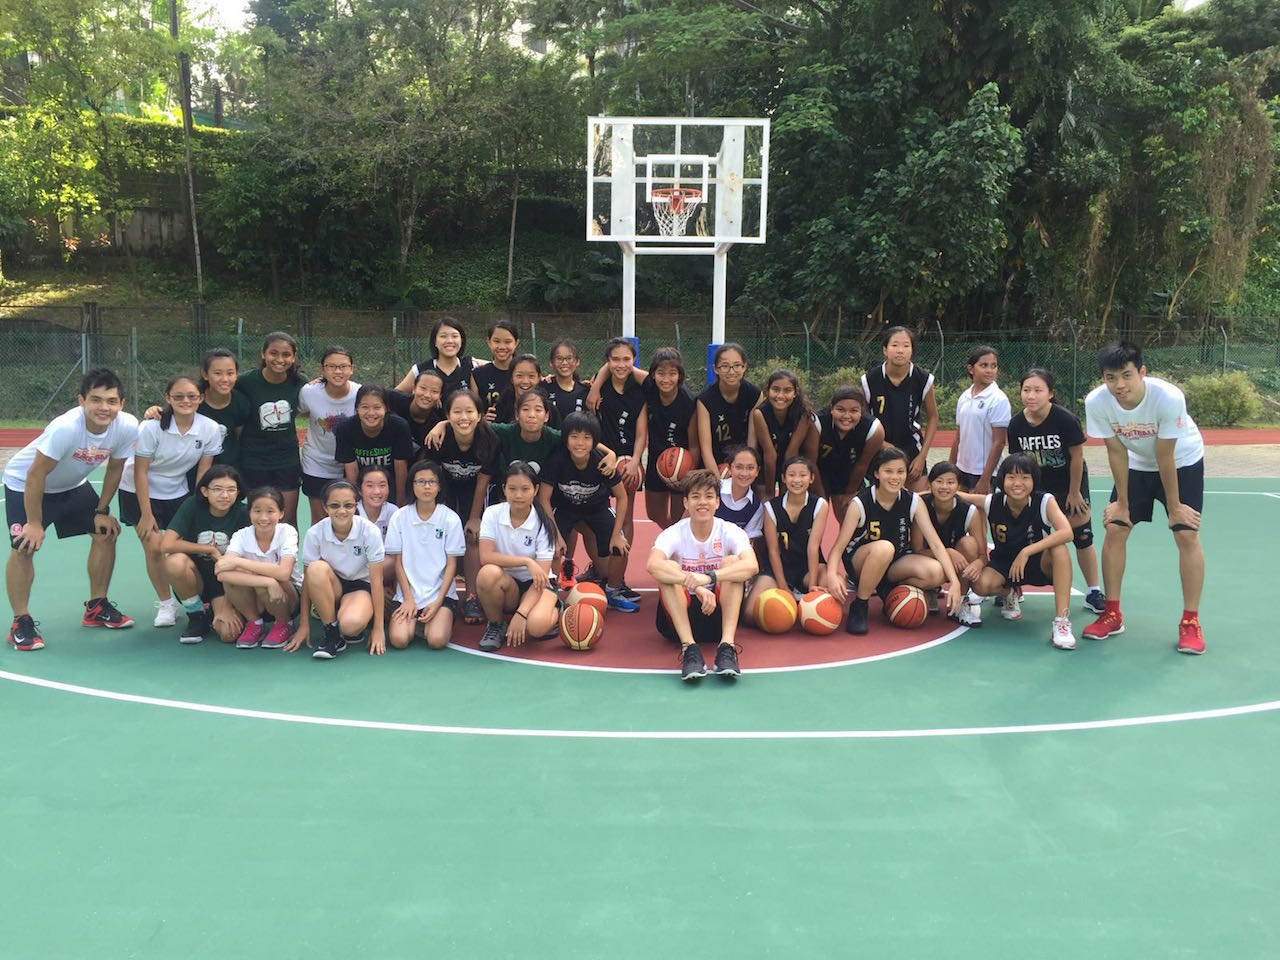 Slingers-at-Raffles-Girls-School-25-2-2016